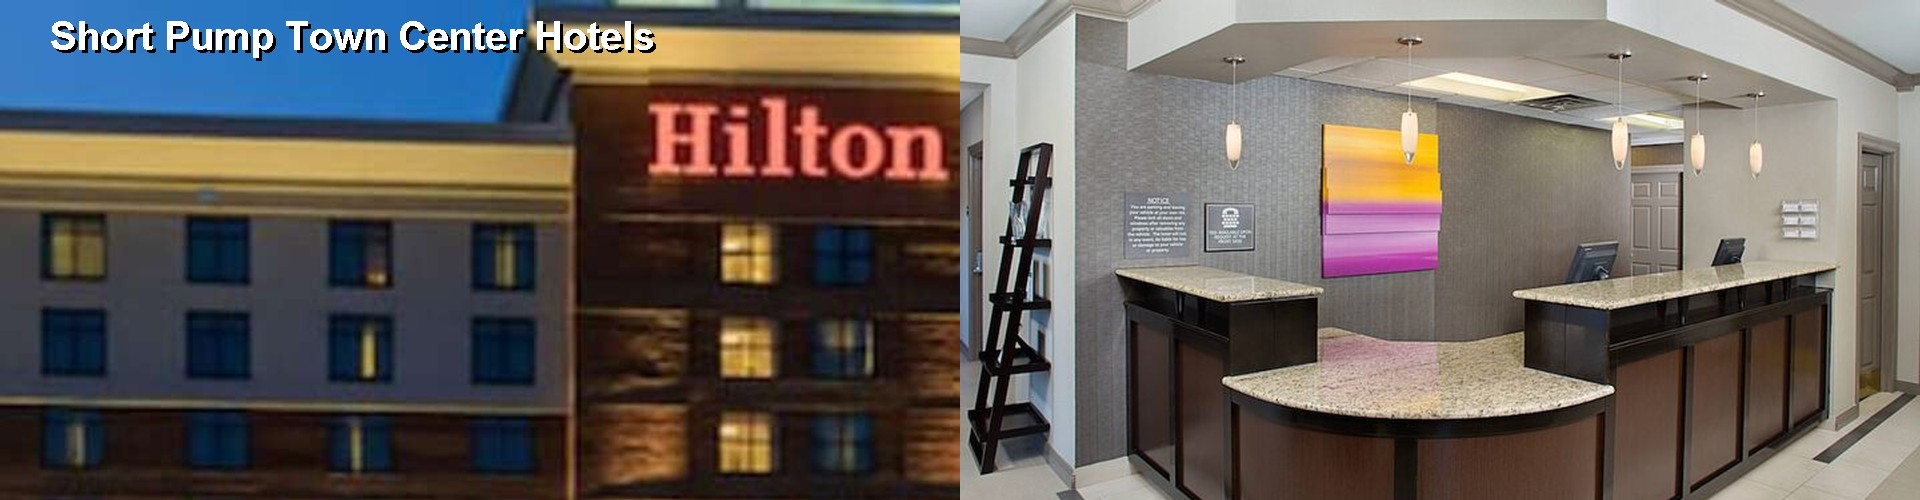 $39+ Hotels Near Short Pump Town Center in Richmond VA